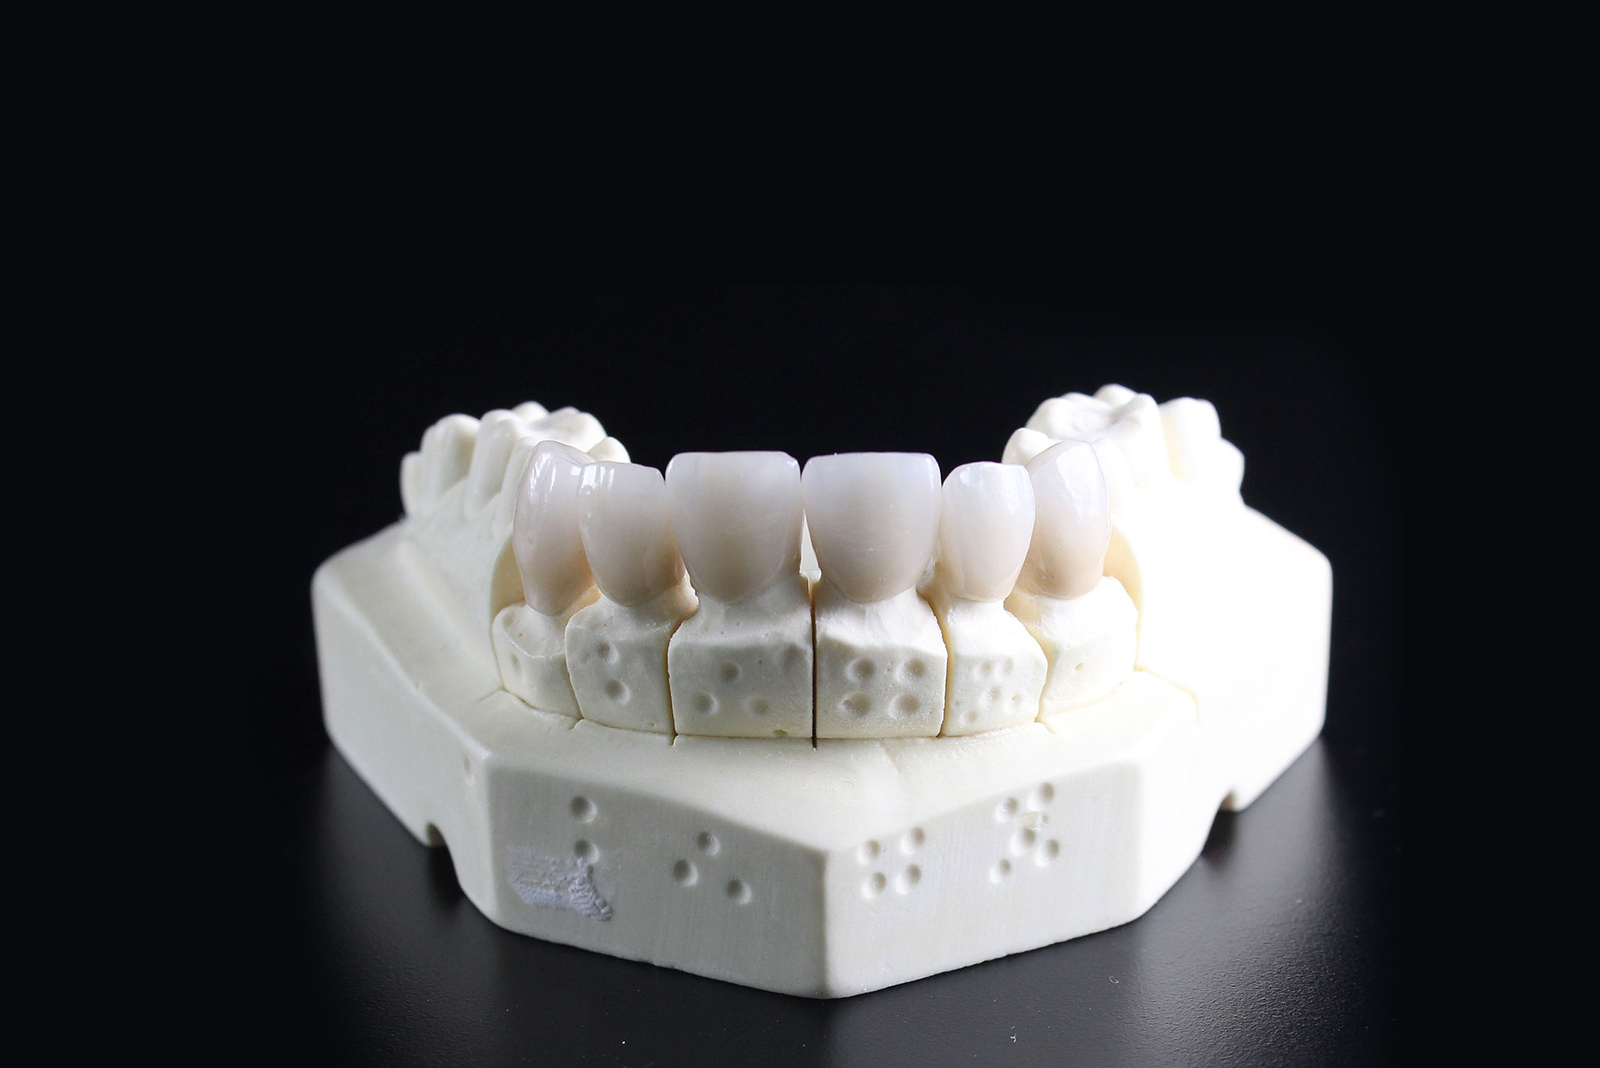 Dental Implant: Treatment in India, Cost, Recovery, and More